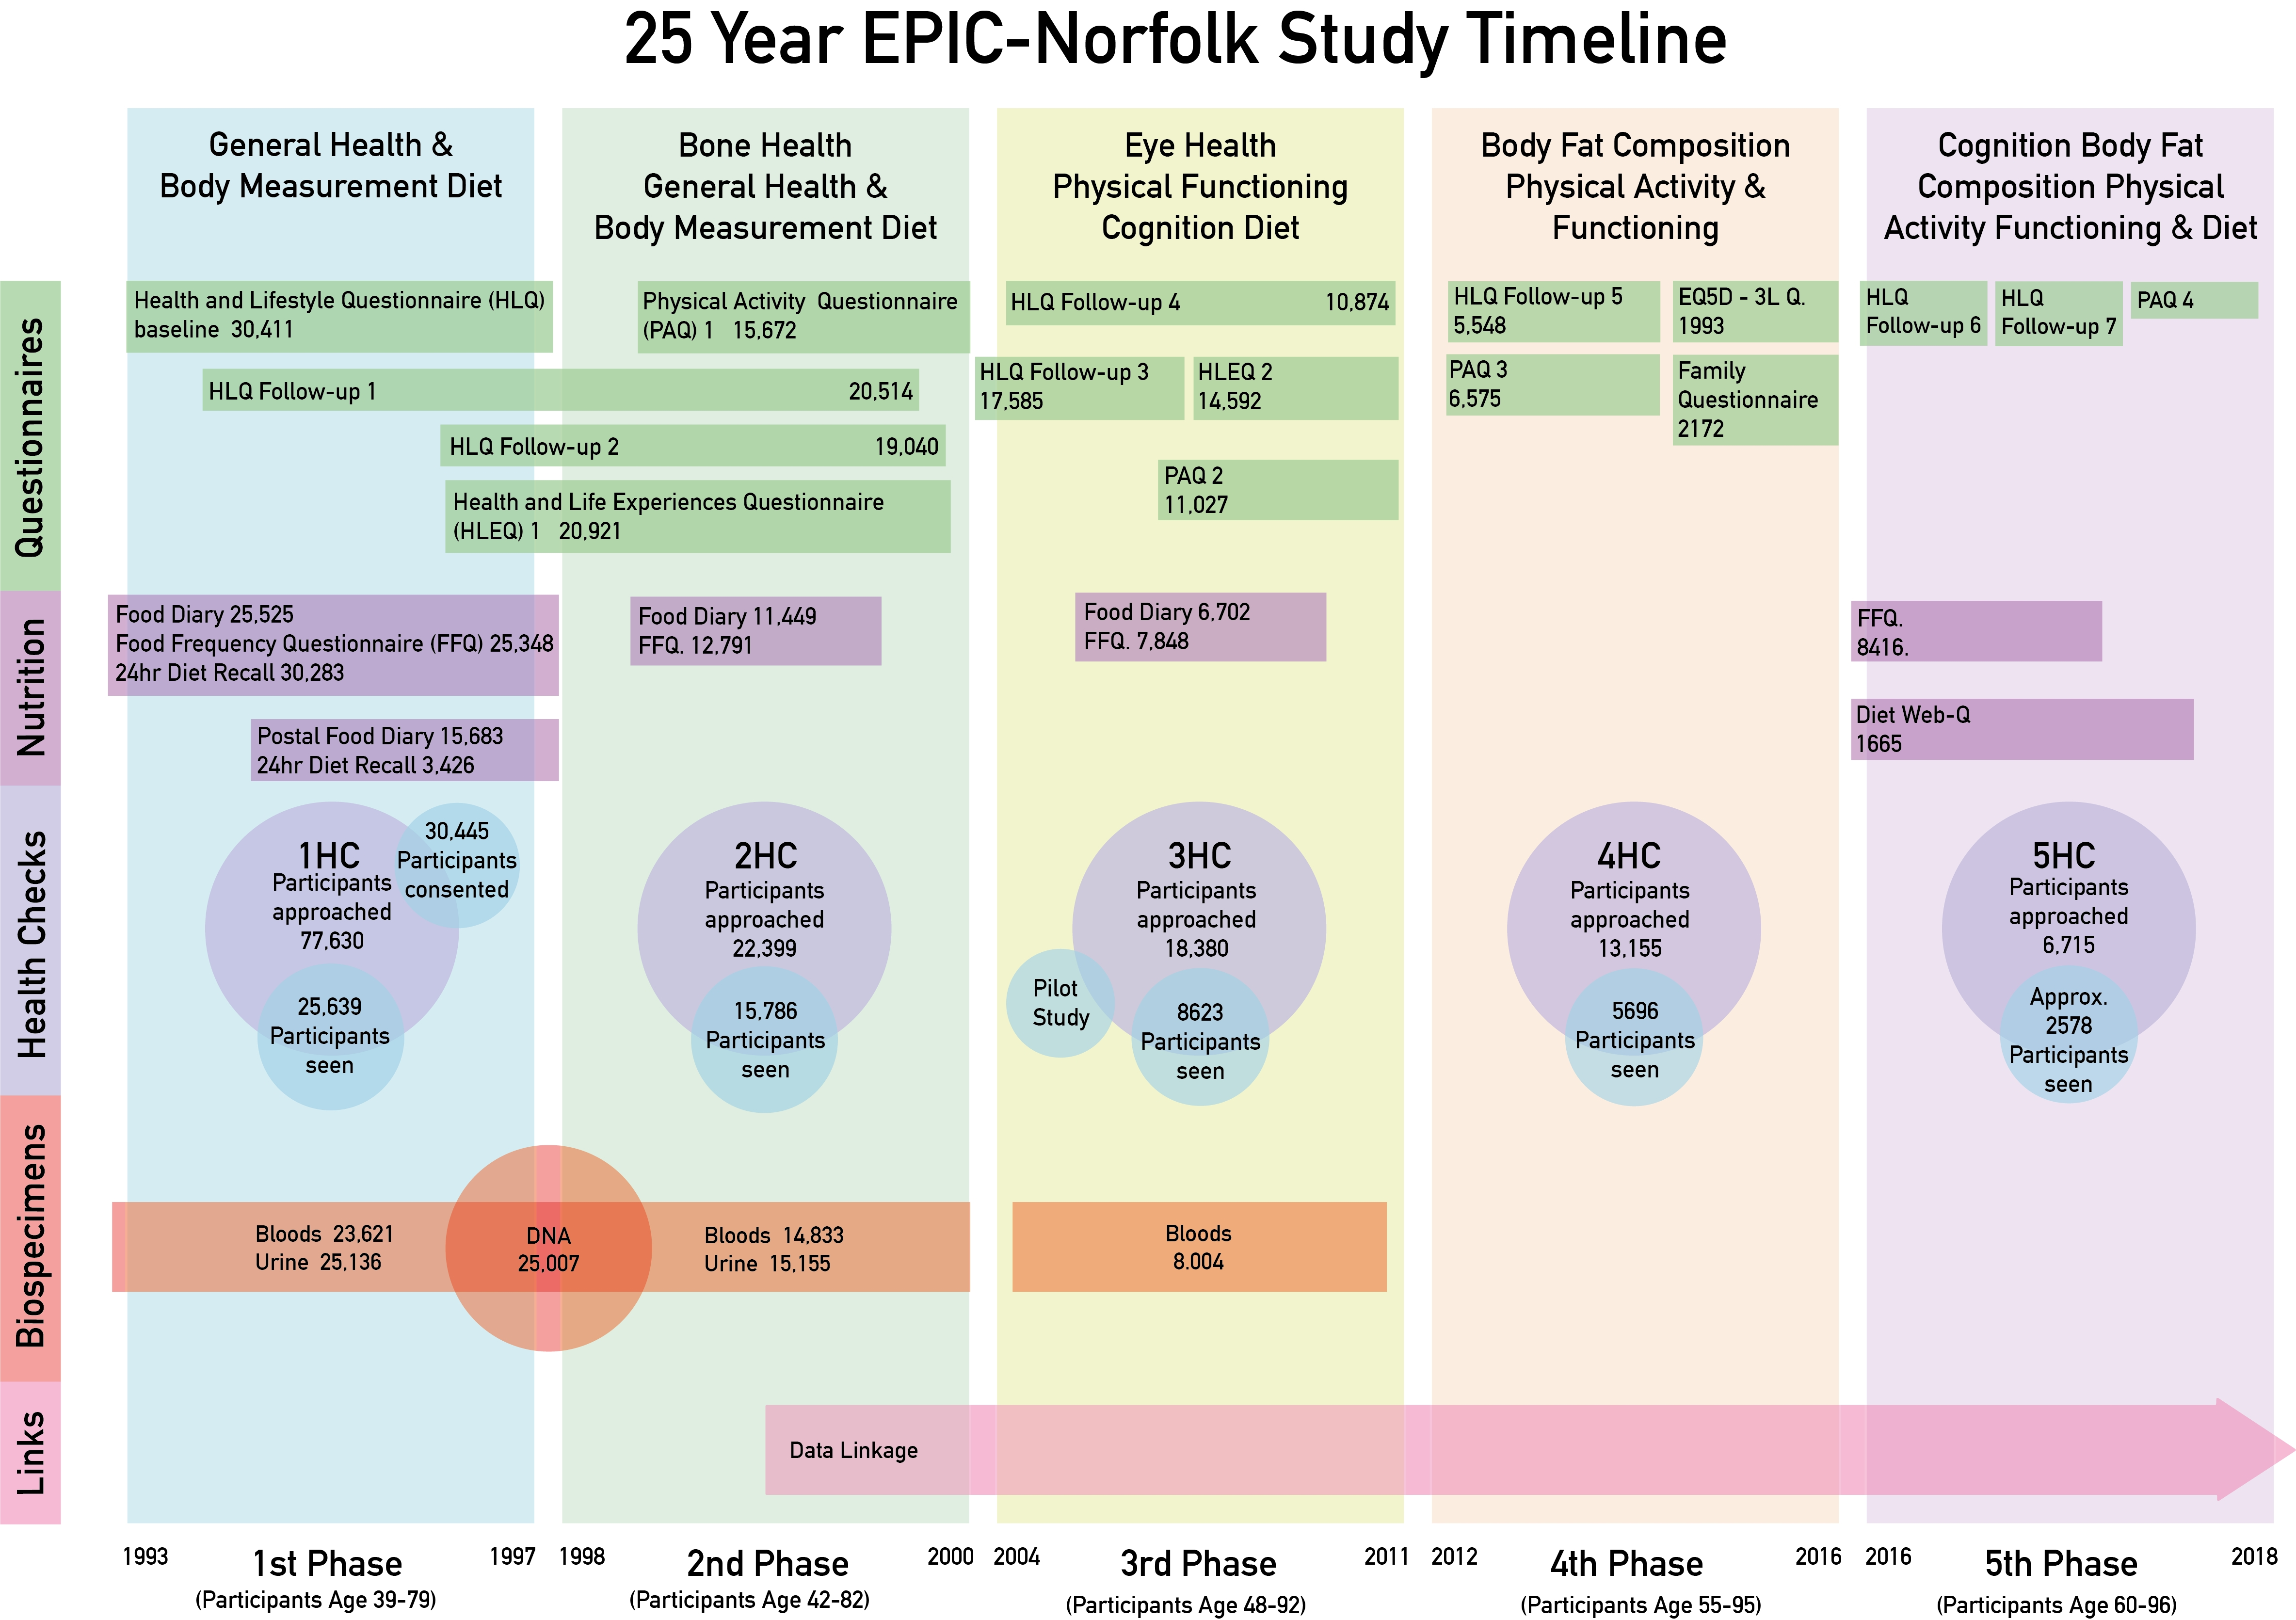 EPIC-Norfolk: Summary Findings & Results